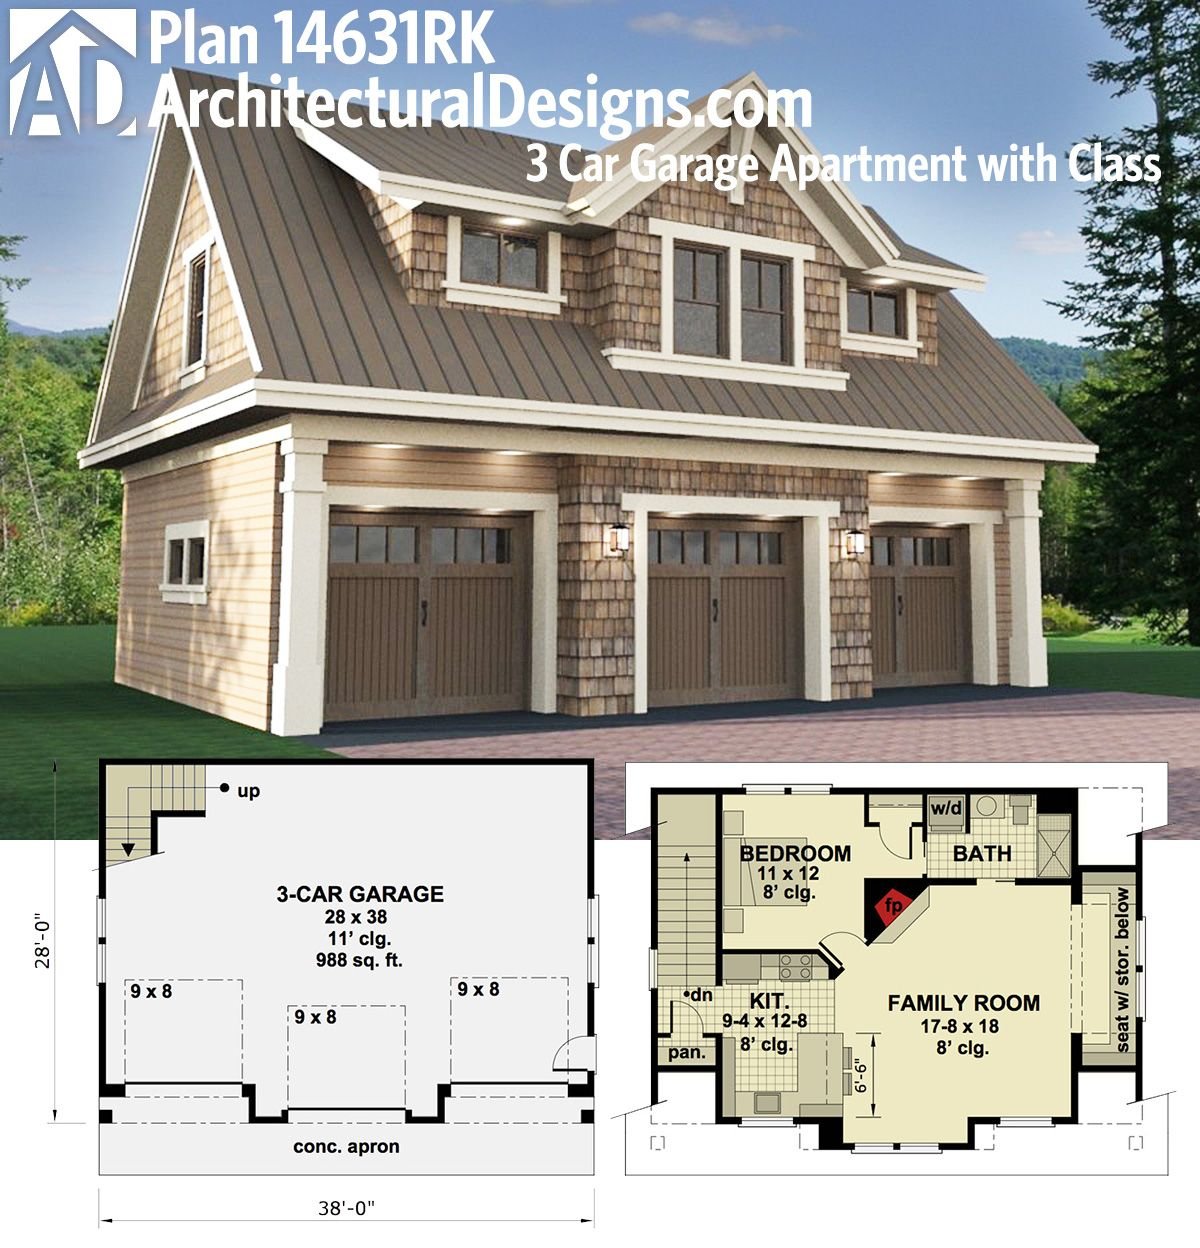 Plan 14631rk 3 car garage apartment with class for Small house plans with garage